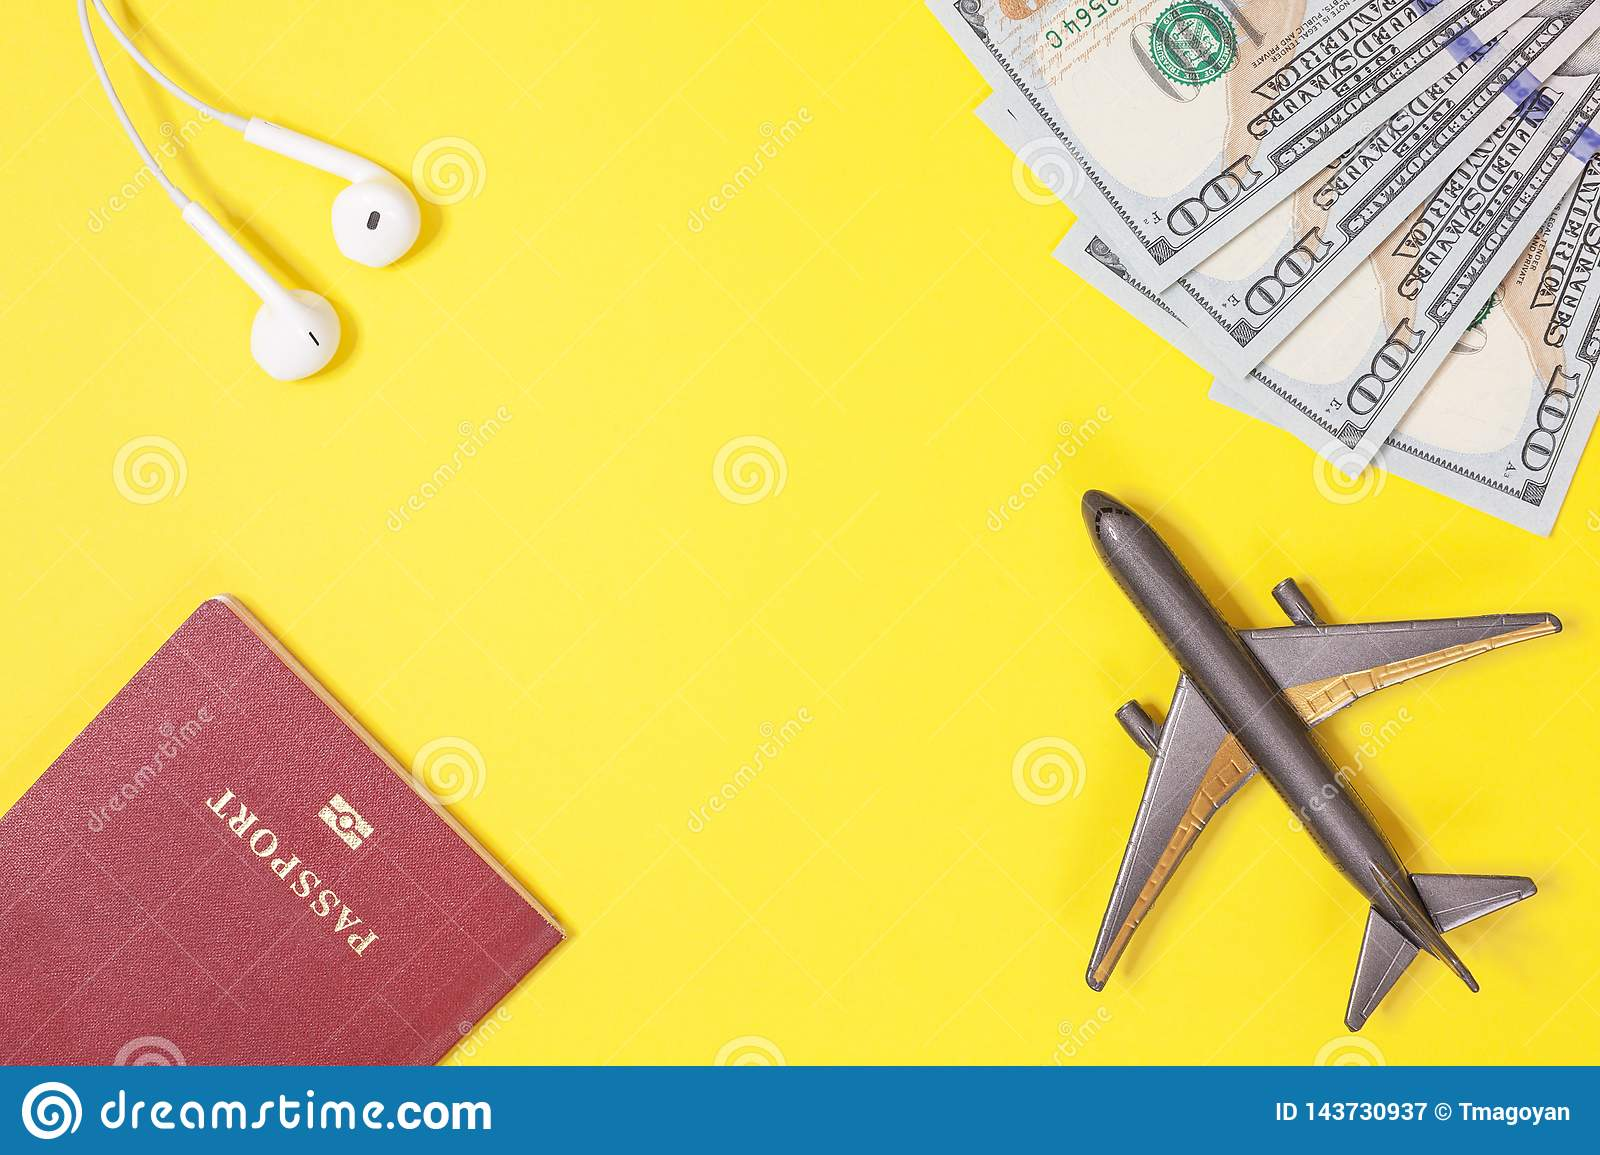 One hundred dollar bills, airplane, headphones, foreign passport on bright yellow paper background. Copy space.